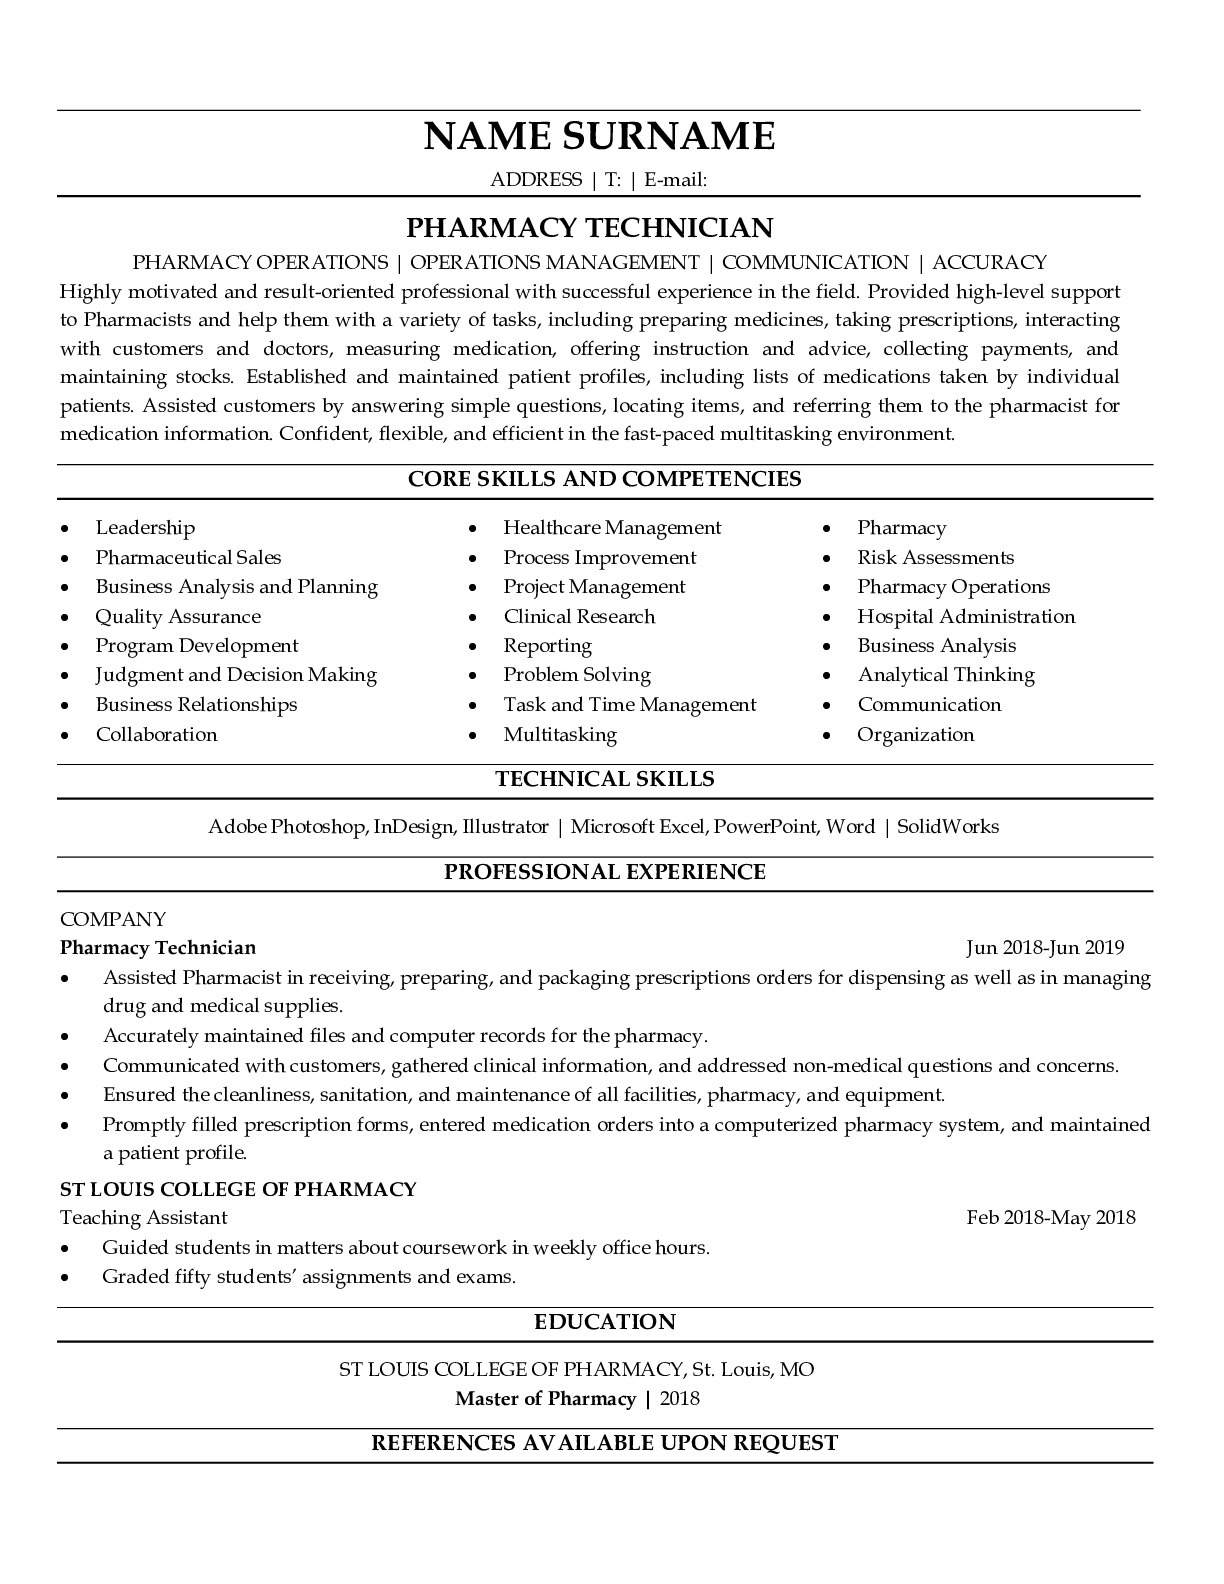 Resume Example for Pharmacy Technician